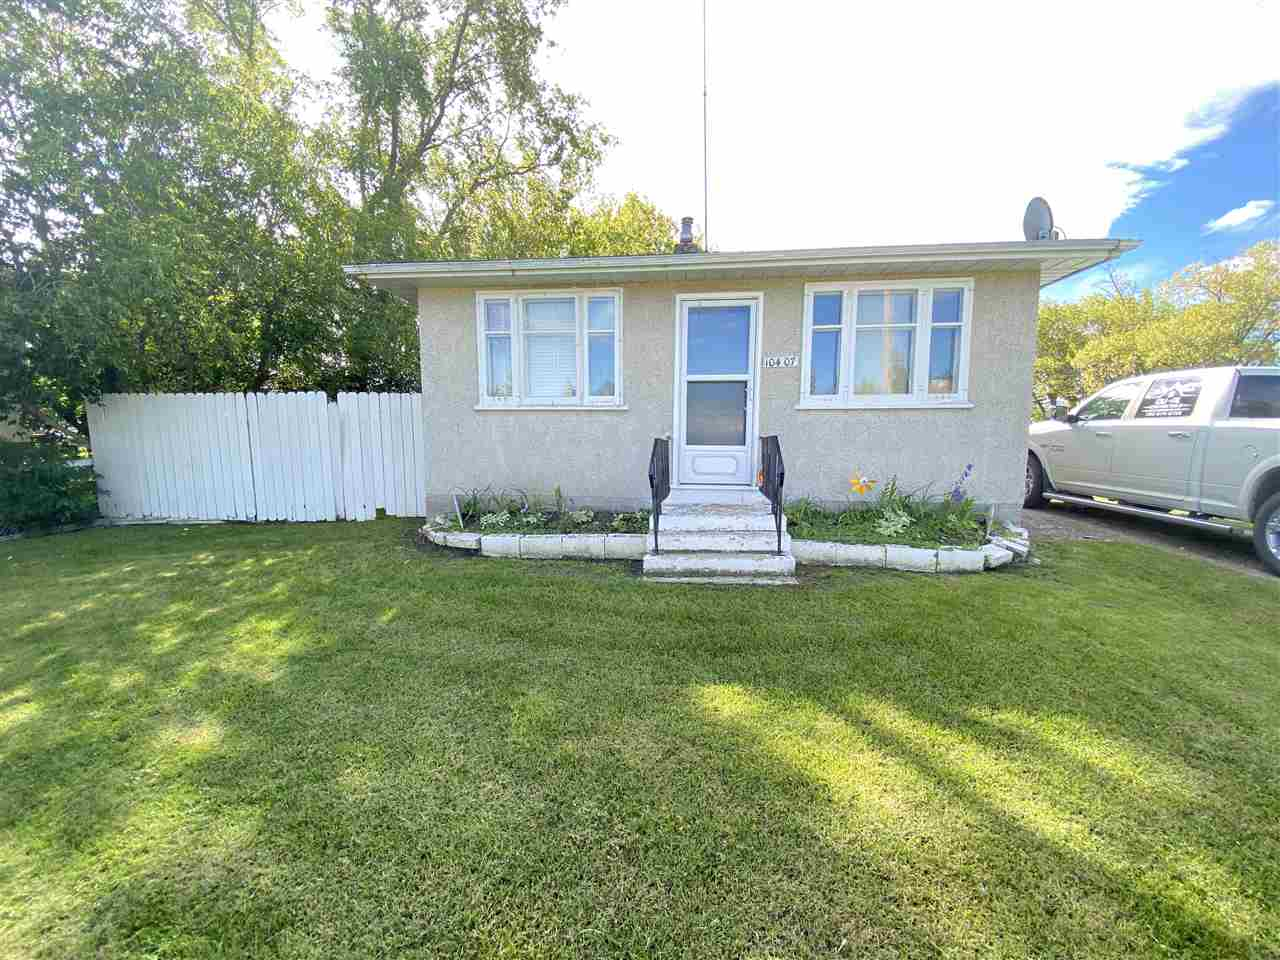 "HOUSE SOLD ""AS IS"".   Seller willing to consider RENT TO OWN!! 2 bedroom bungalow on large lot!!  Quiet setting located at the end of 103st.  Double Detached built in approx 1986.  Lot to the west is also listed!  Investment oppurtunity to buy 2 lots for a great price!"